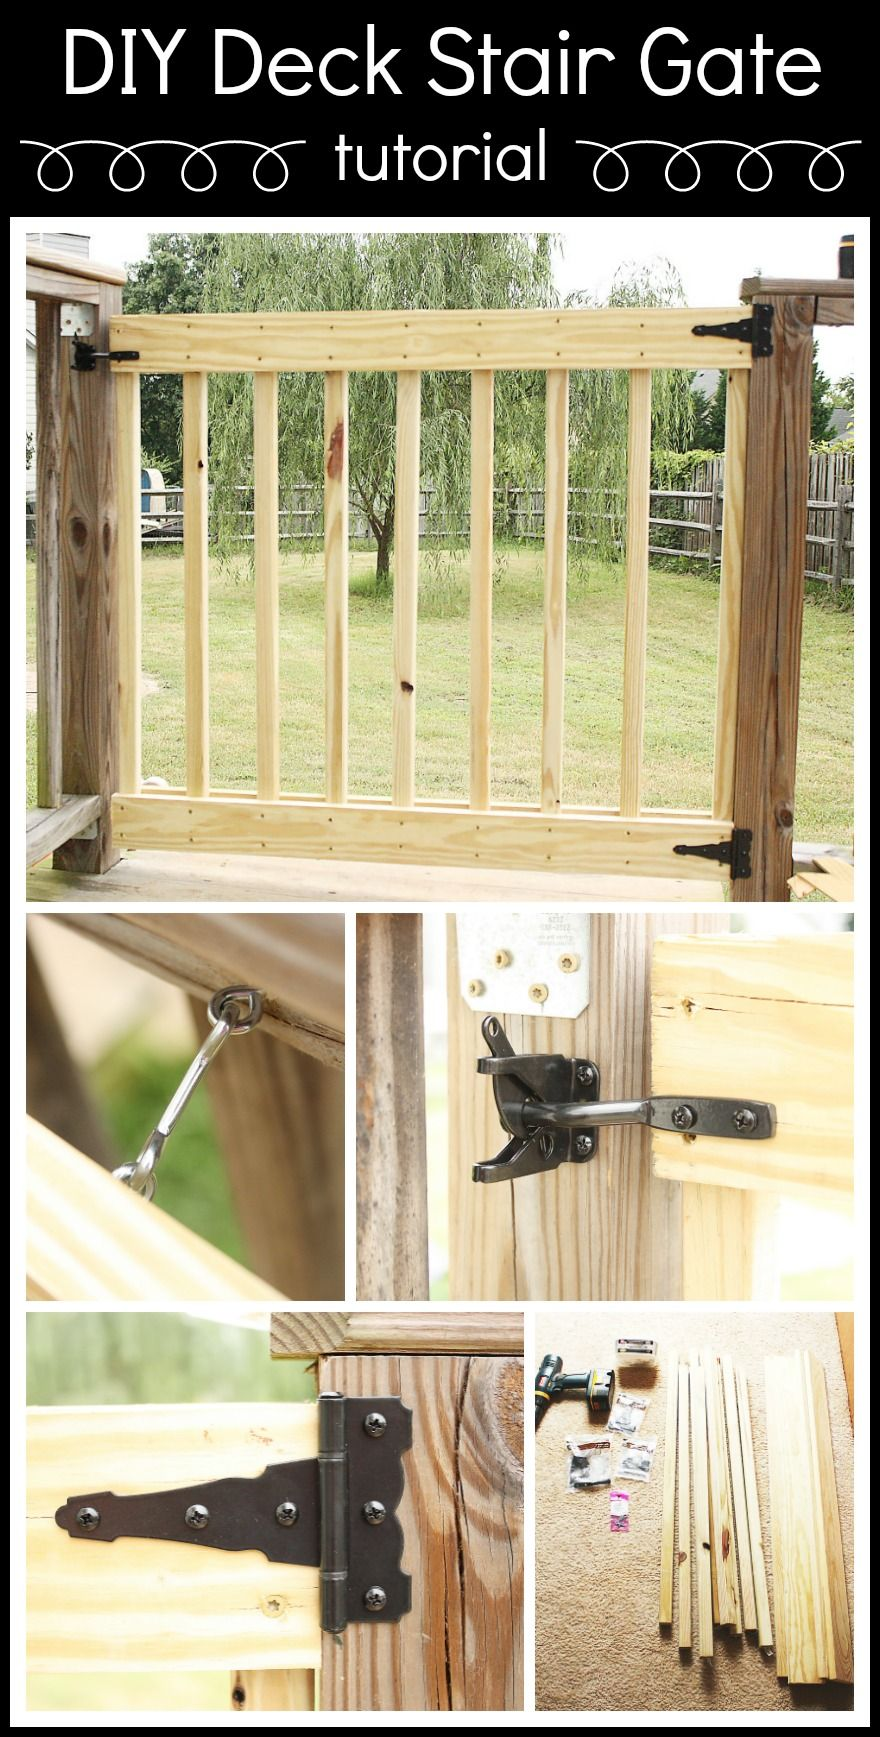 Mamamommymom Com Nbspmamamommymom Resources And Information Diy Deck Deck Stairs Stair Gate